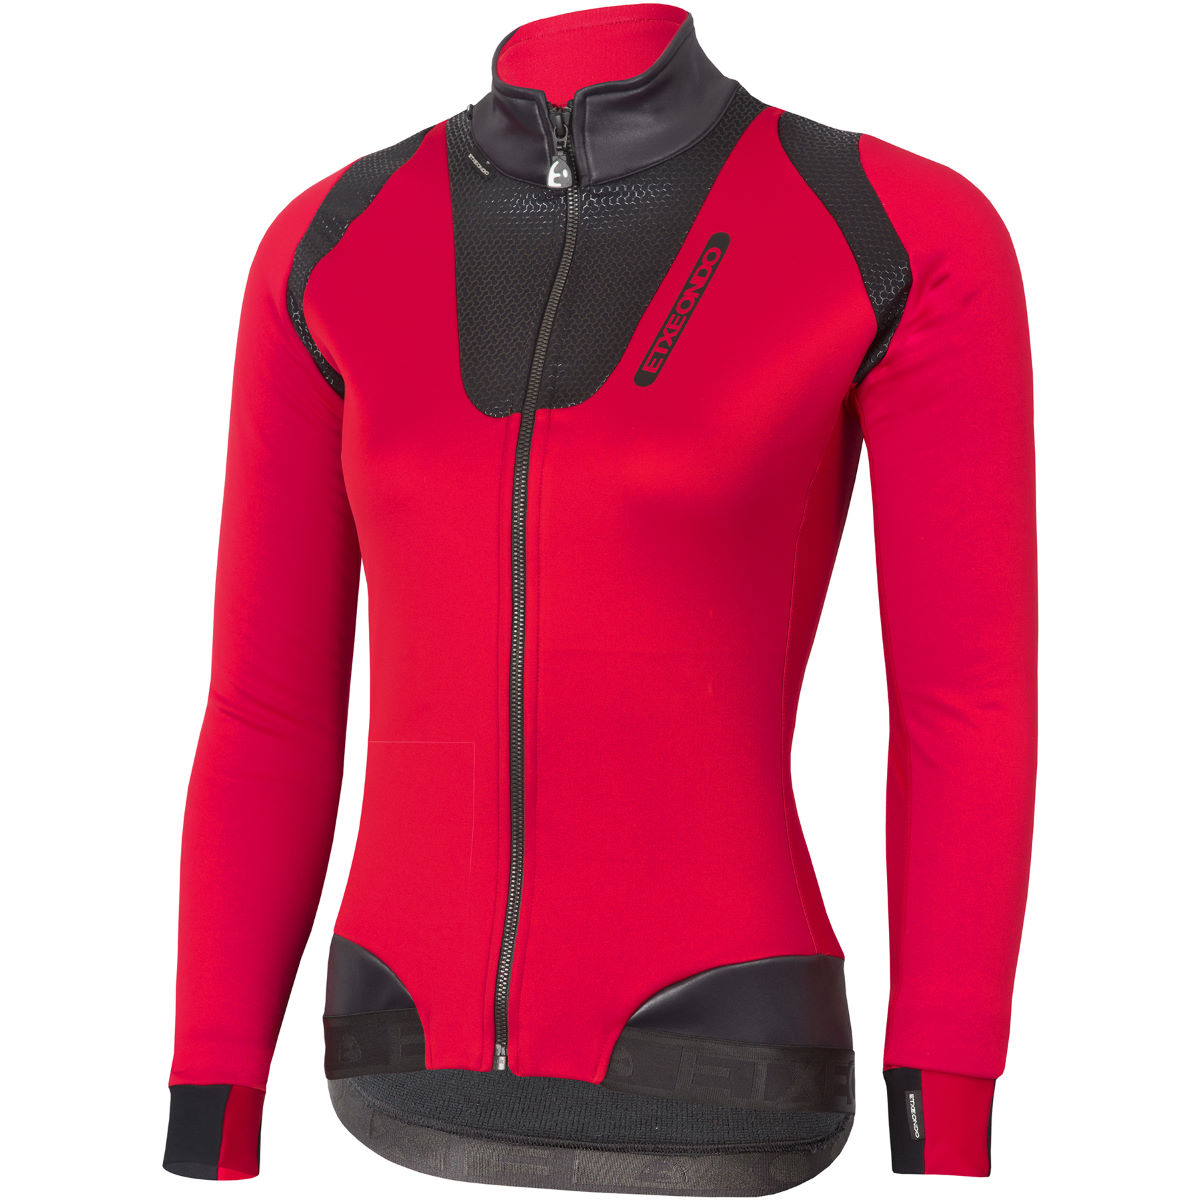 Etxeondo Women's Obena Windstopper Jacket   Jackets